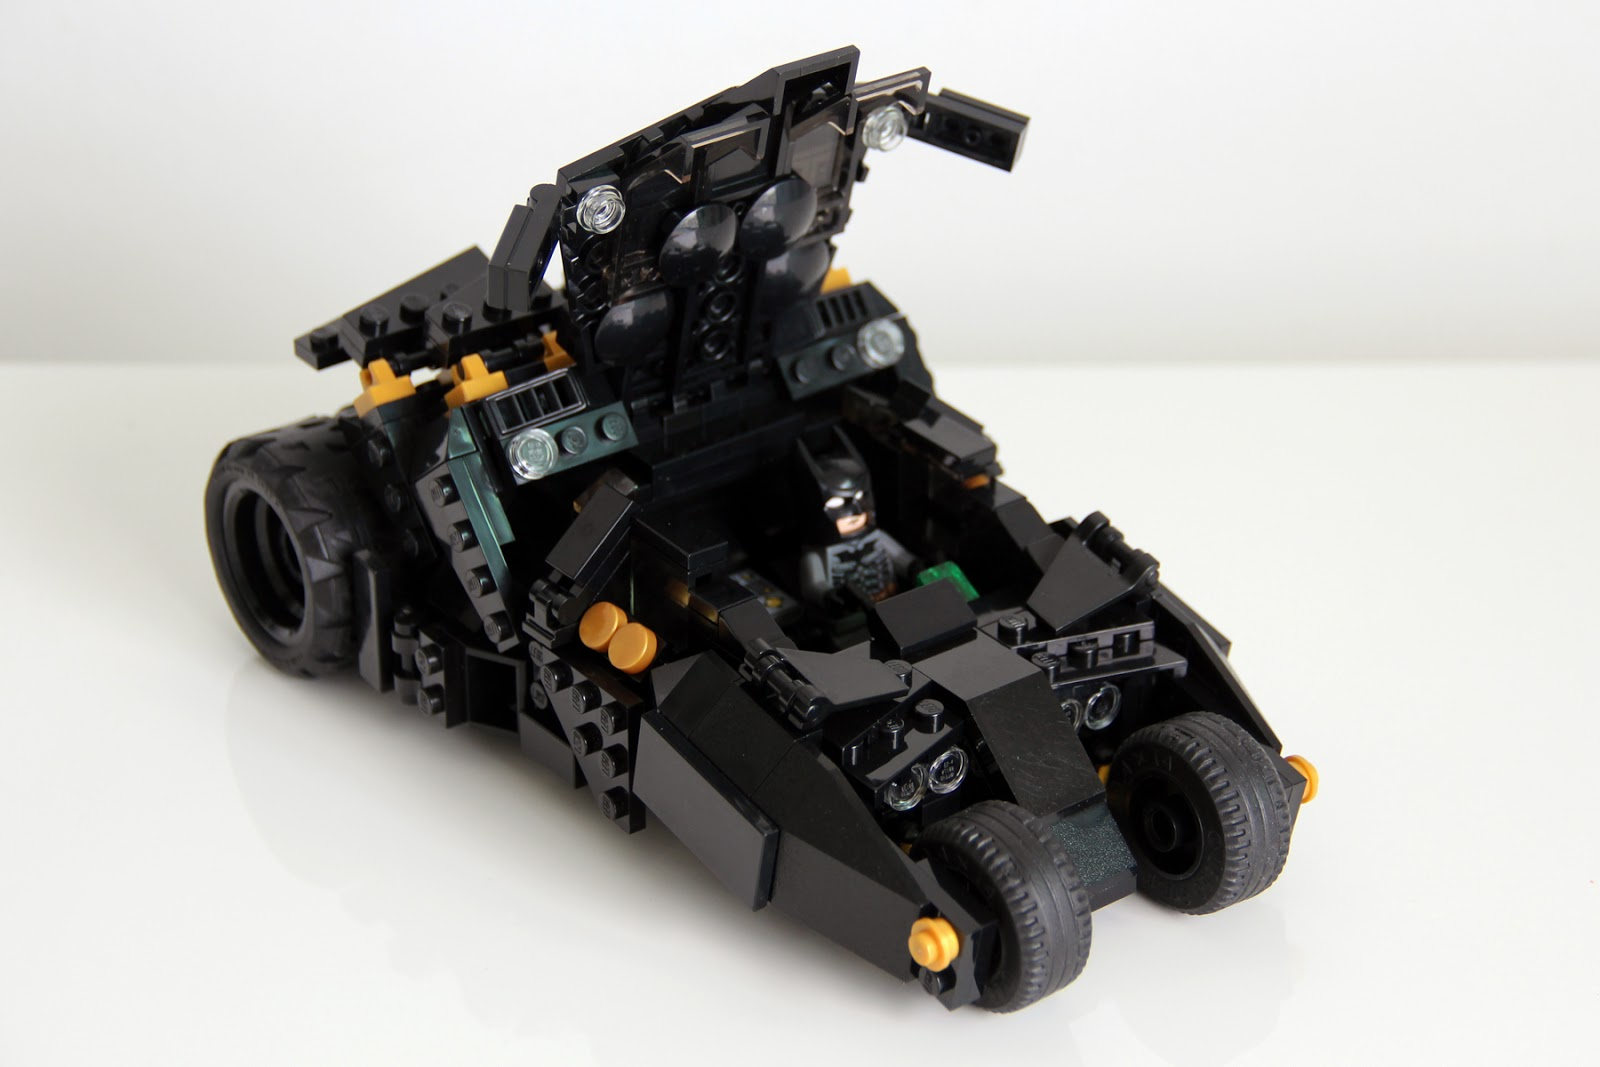 movie scale the dark knight trilogy movie accurate 2 seater lego tumbler bat pod and also the bat. Black Bedroom Furniture Sets. Home Design Ideas